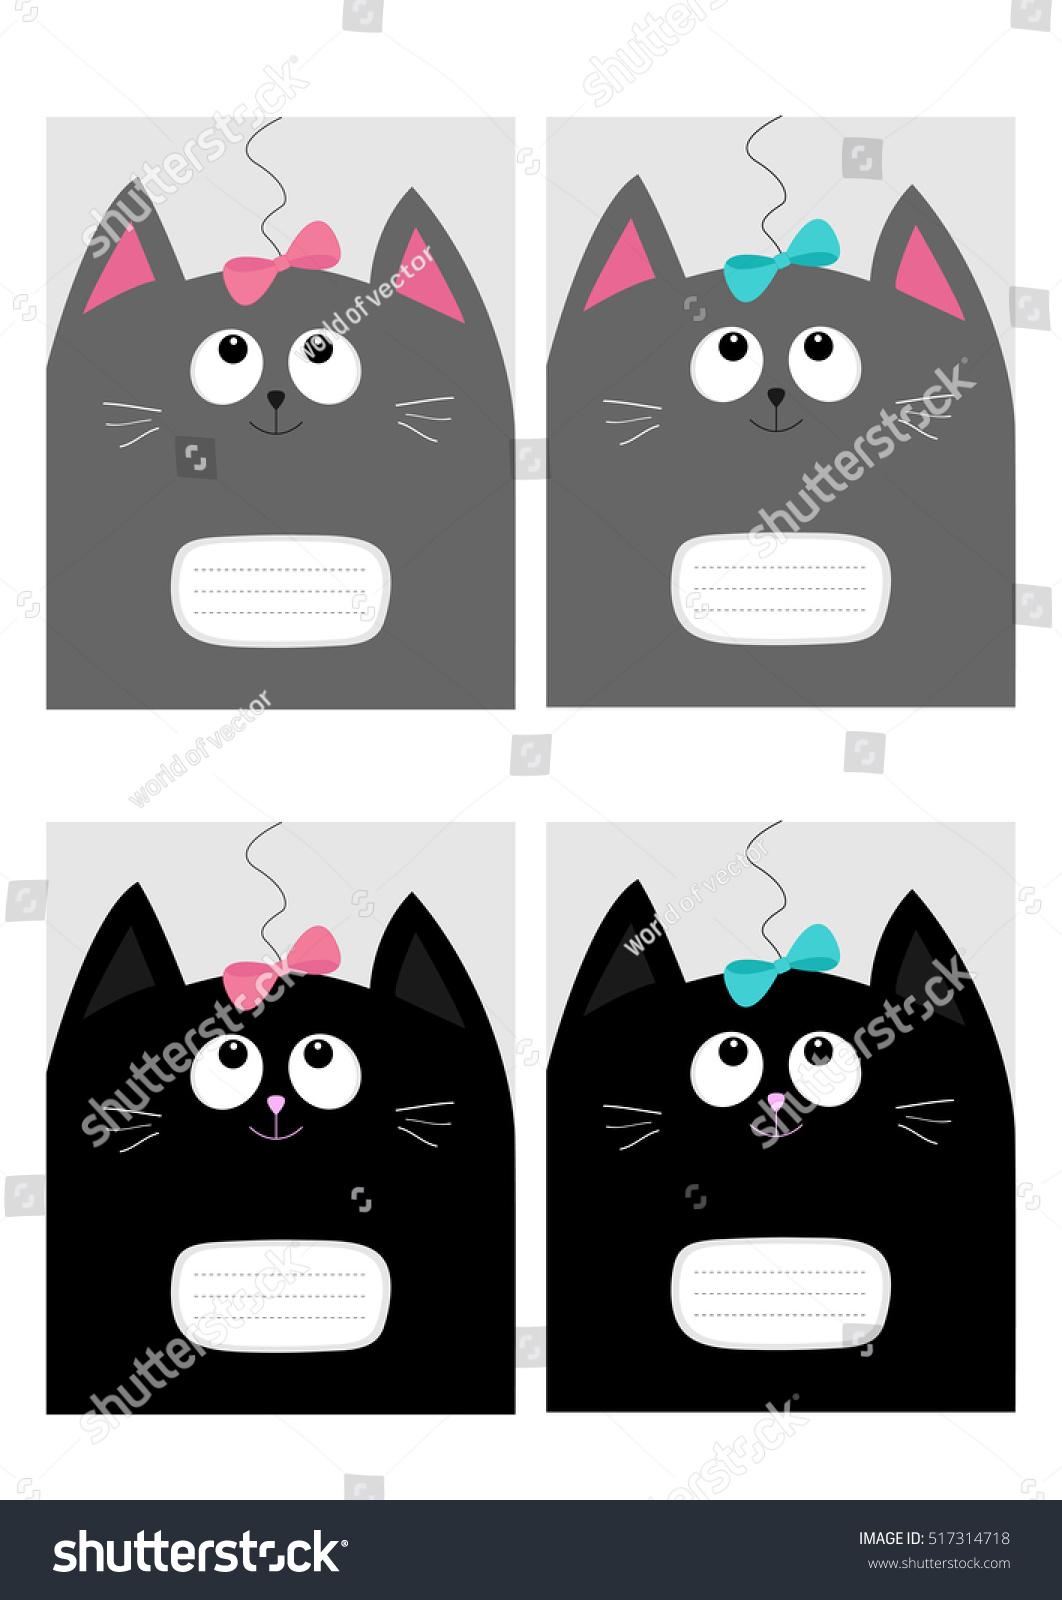 Notebook Cover Composition Book Template. Black Gray Cat Kitty Head Looking  At Pink Blue Bow